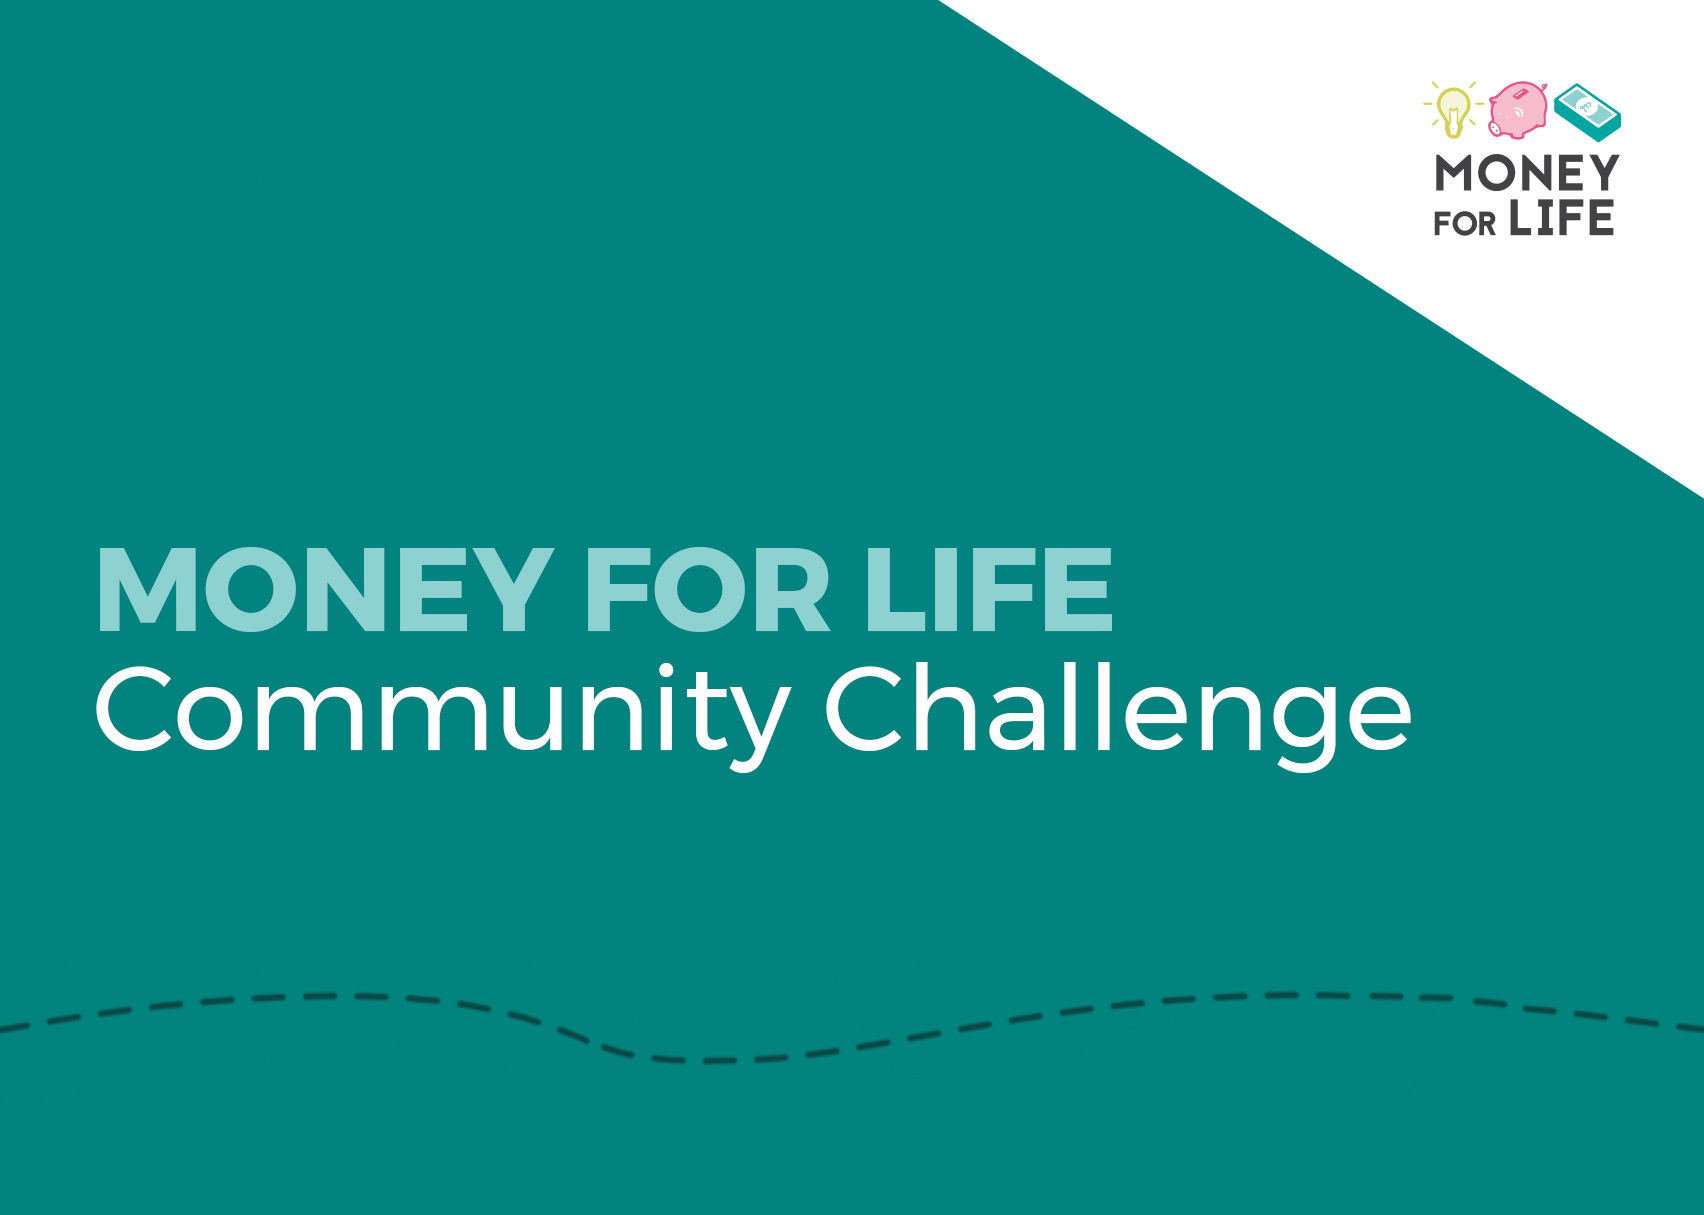 Grants available to fund a Community Project